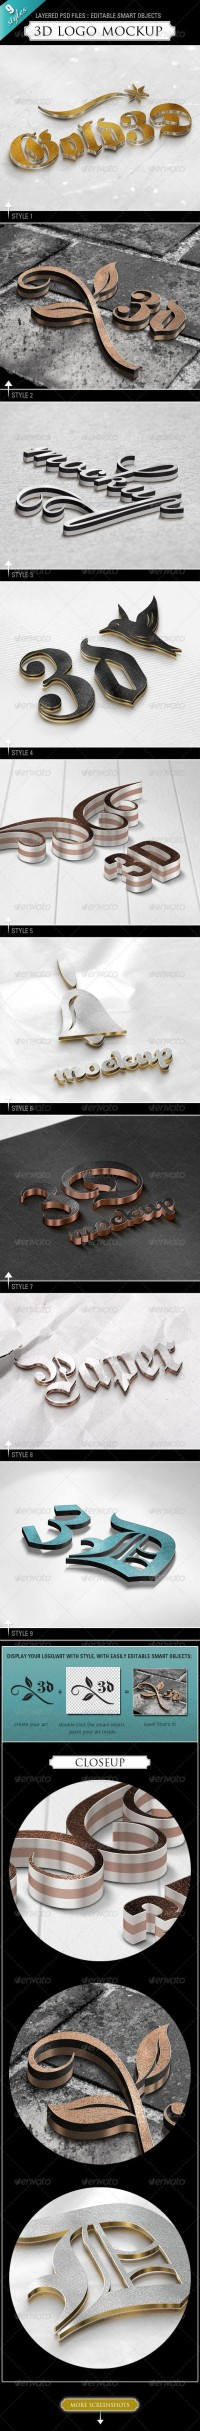 Graphics - 3D Logo Mockup - 9 Styles | GraphicRiver